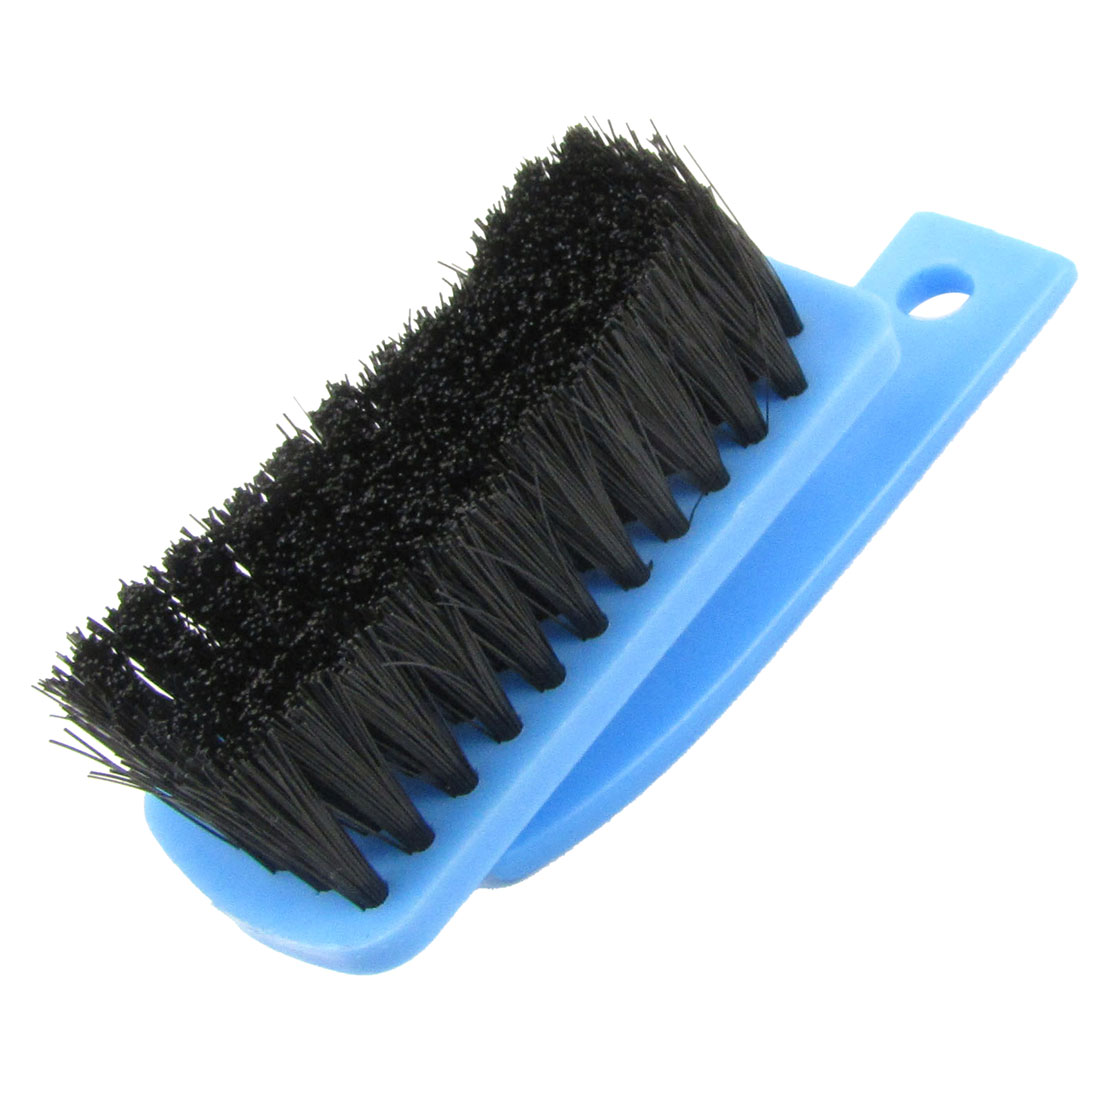 Rectangular Base Blue Black Plastic Clothes Scrubbing Brush Tool